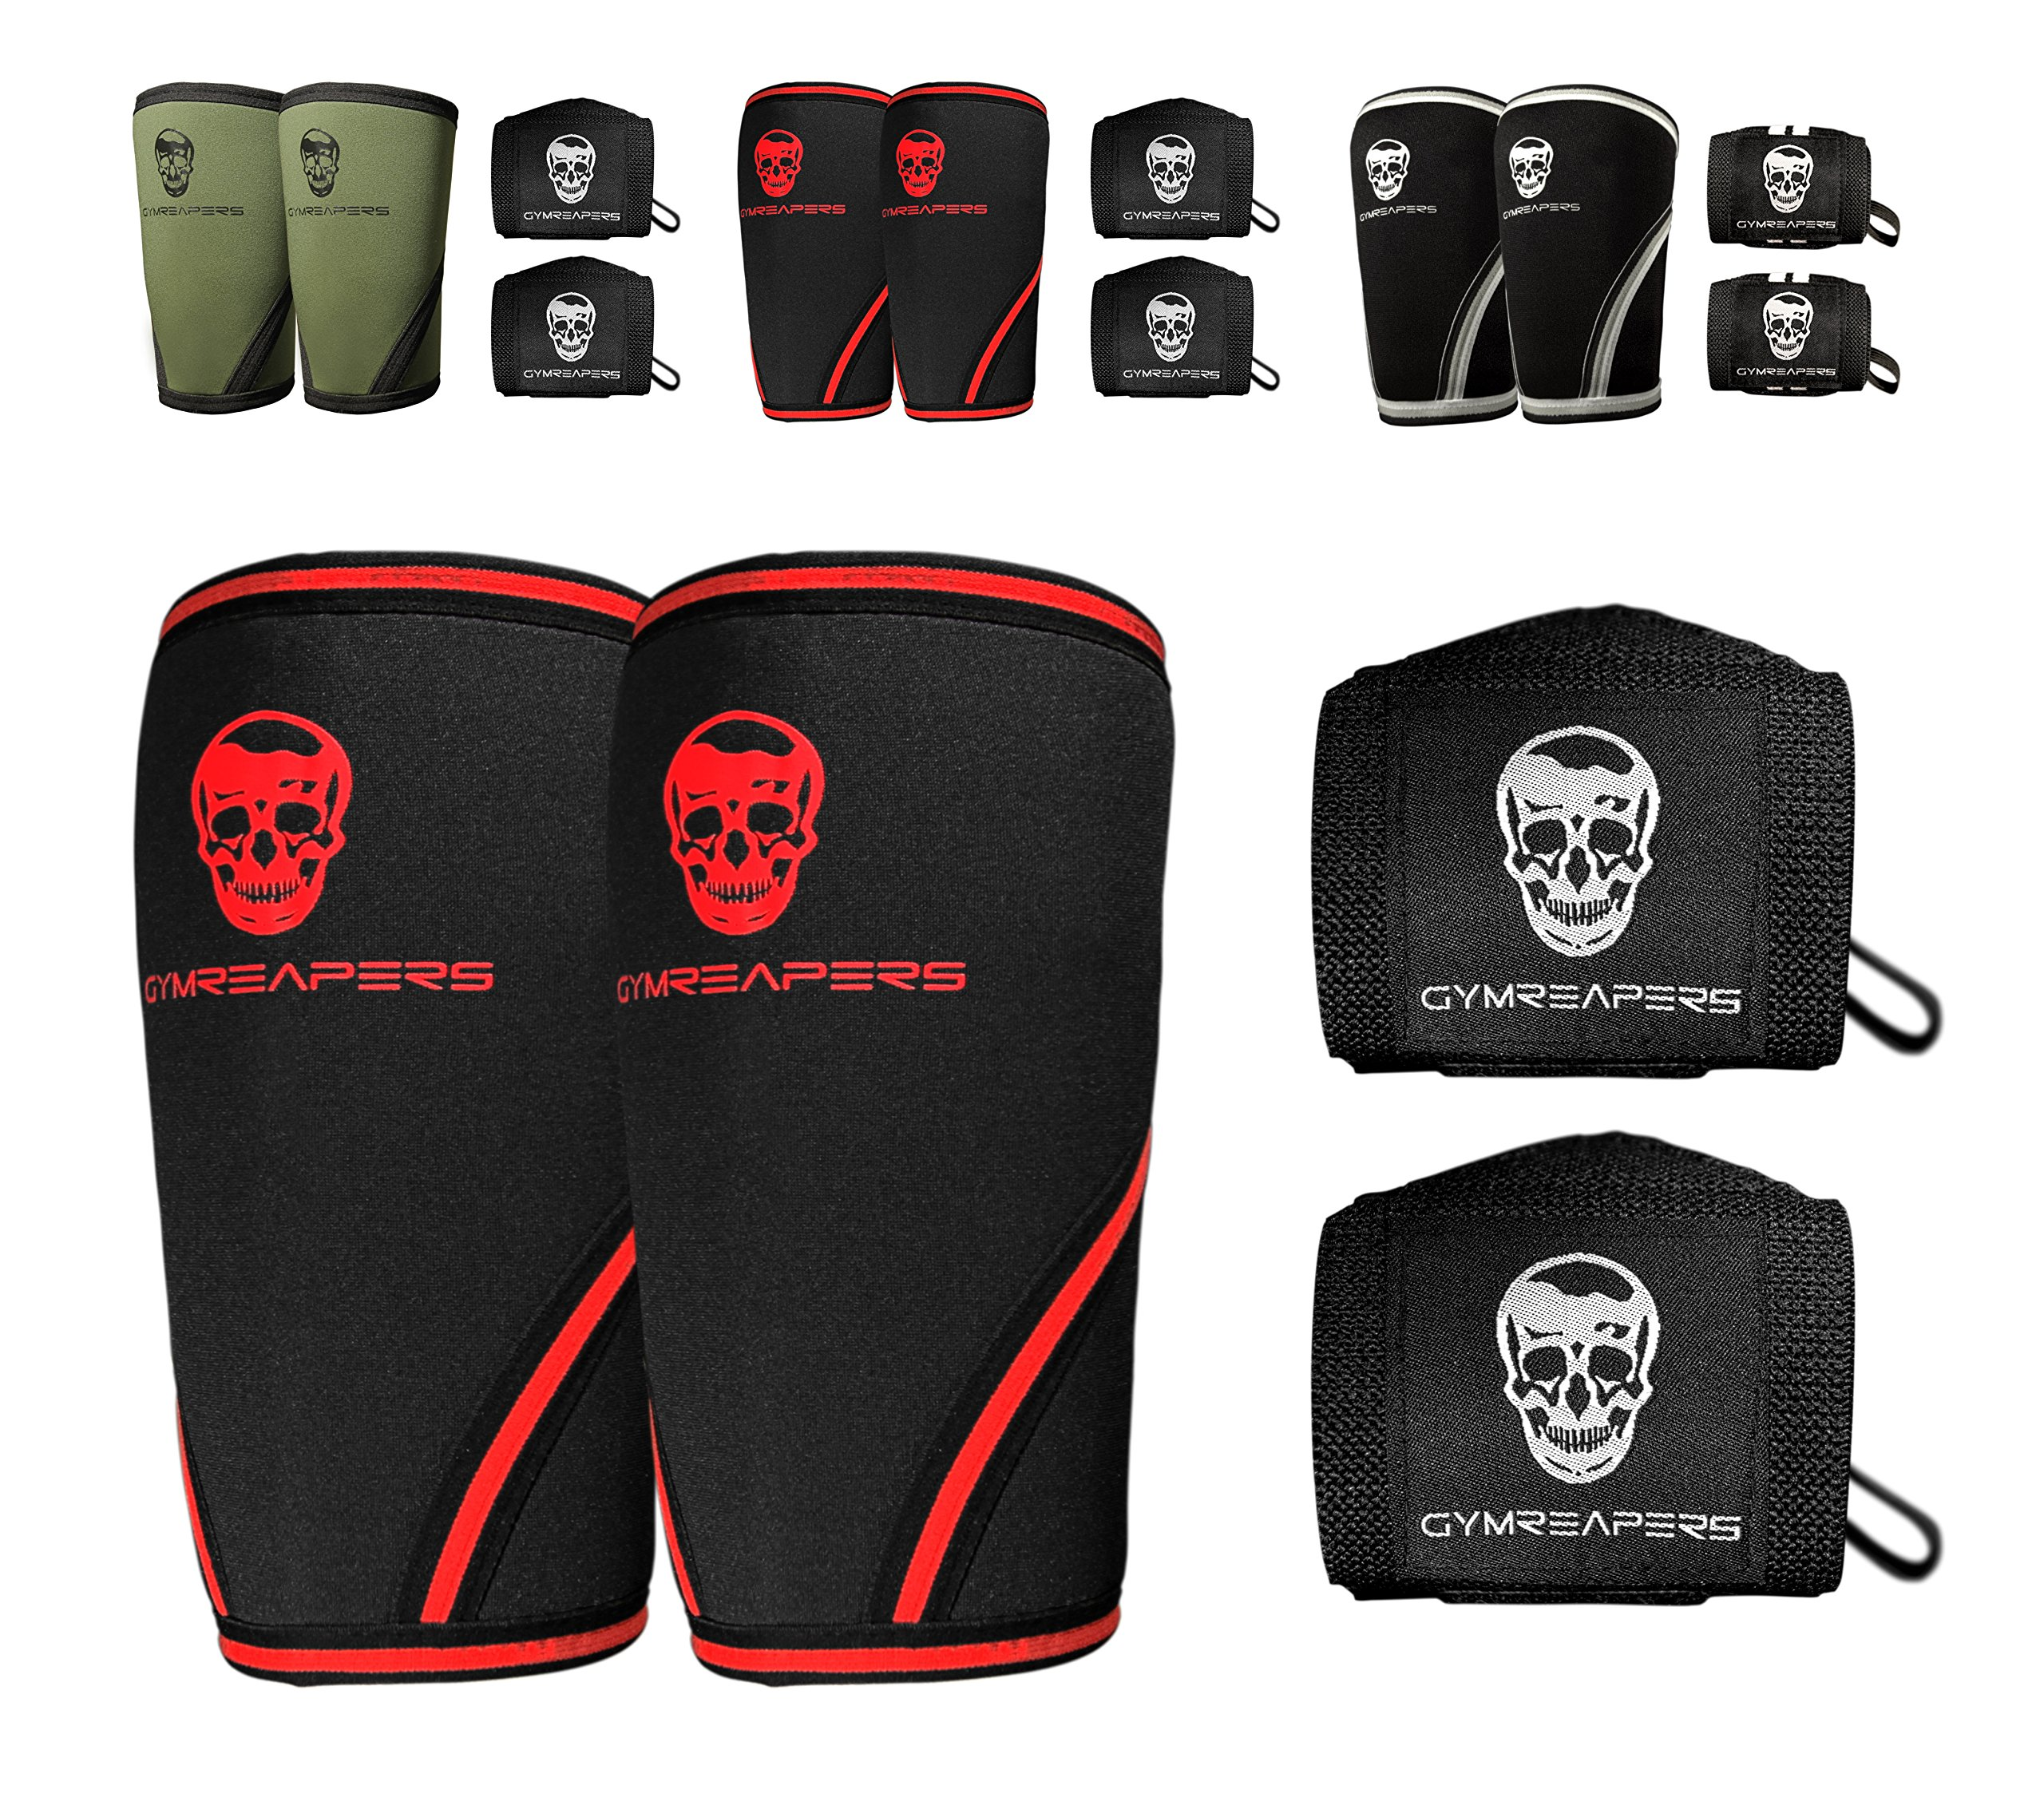 Gymreapers Elbow Sleeves (1 Pair) W/Bonus Wrist Wraps - Support & Compression for Powerlifting, Weightlifting, Bench & Tendonitis 5mm Neoprene Sleeve - for Men & Women (Black/Red, X-Large) by Gymreapers